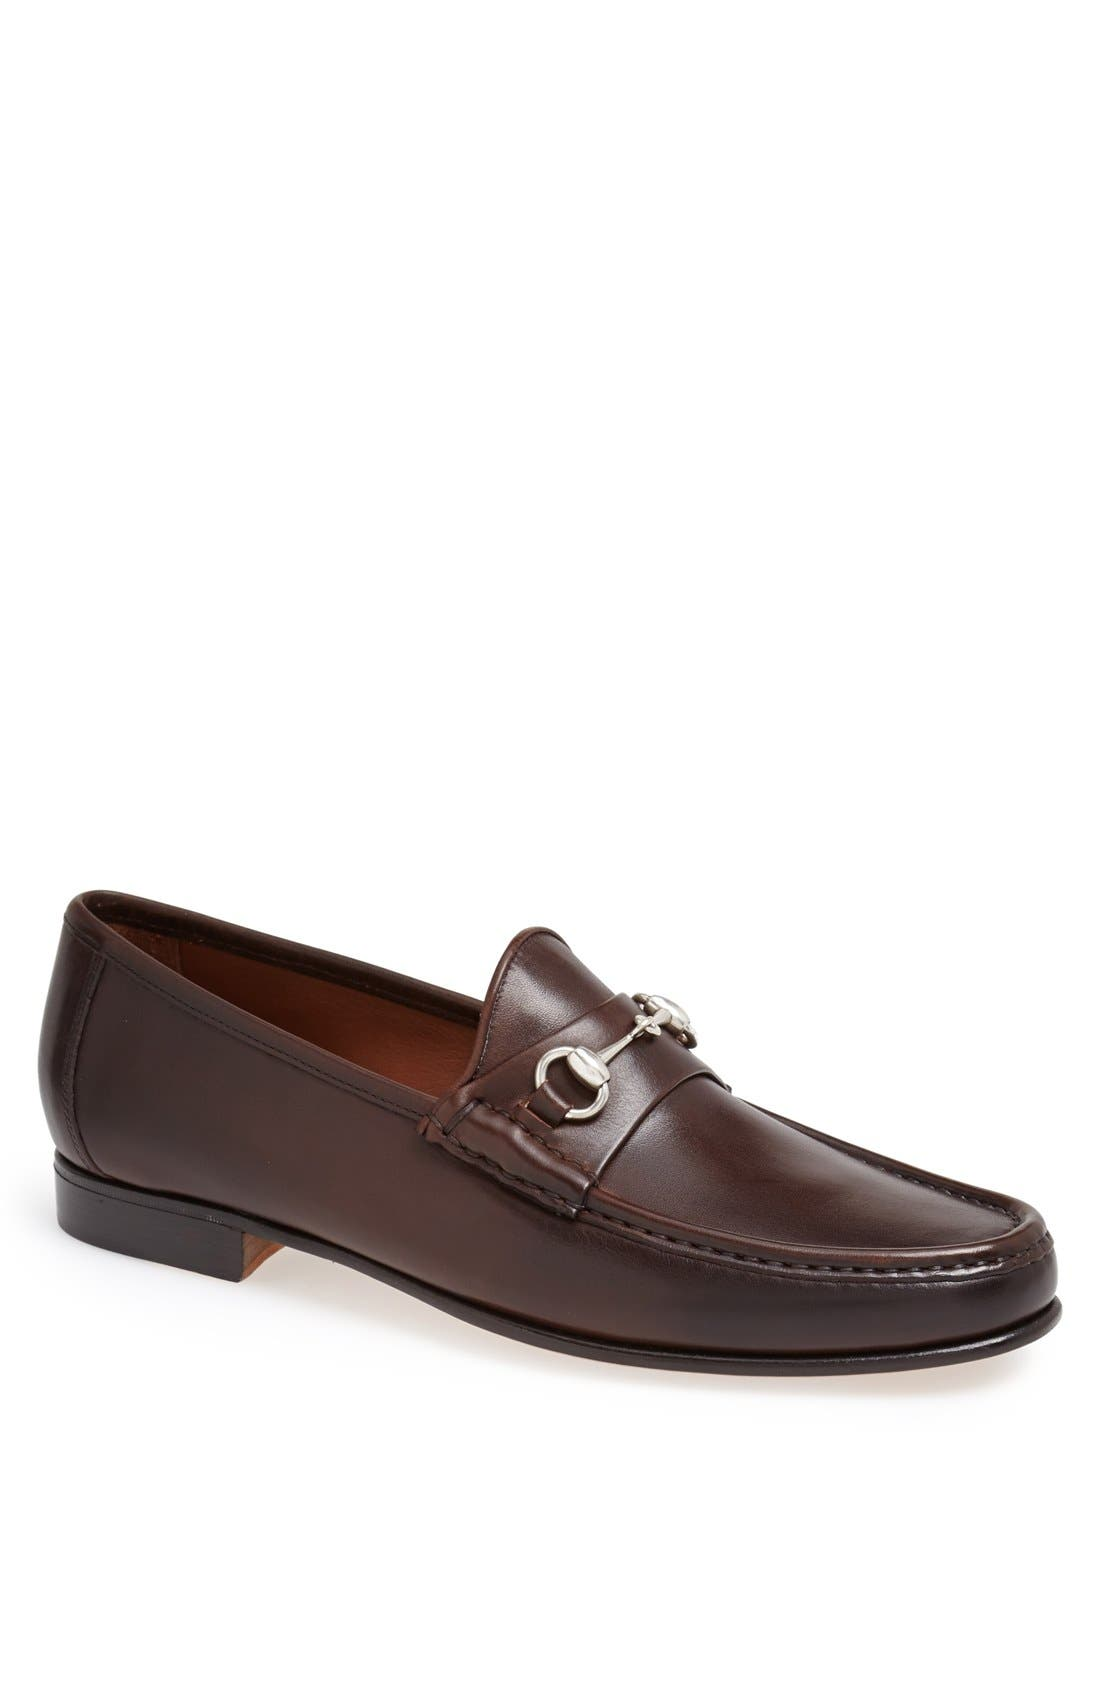 ALLEN EDMONDS, Verona II Bit Loafer, Main thumbnail 1, color, BROWN/ BROWN